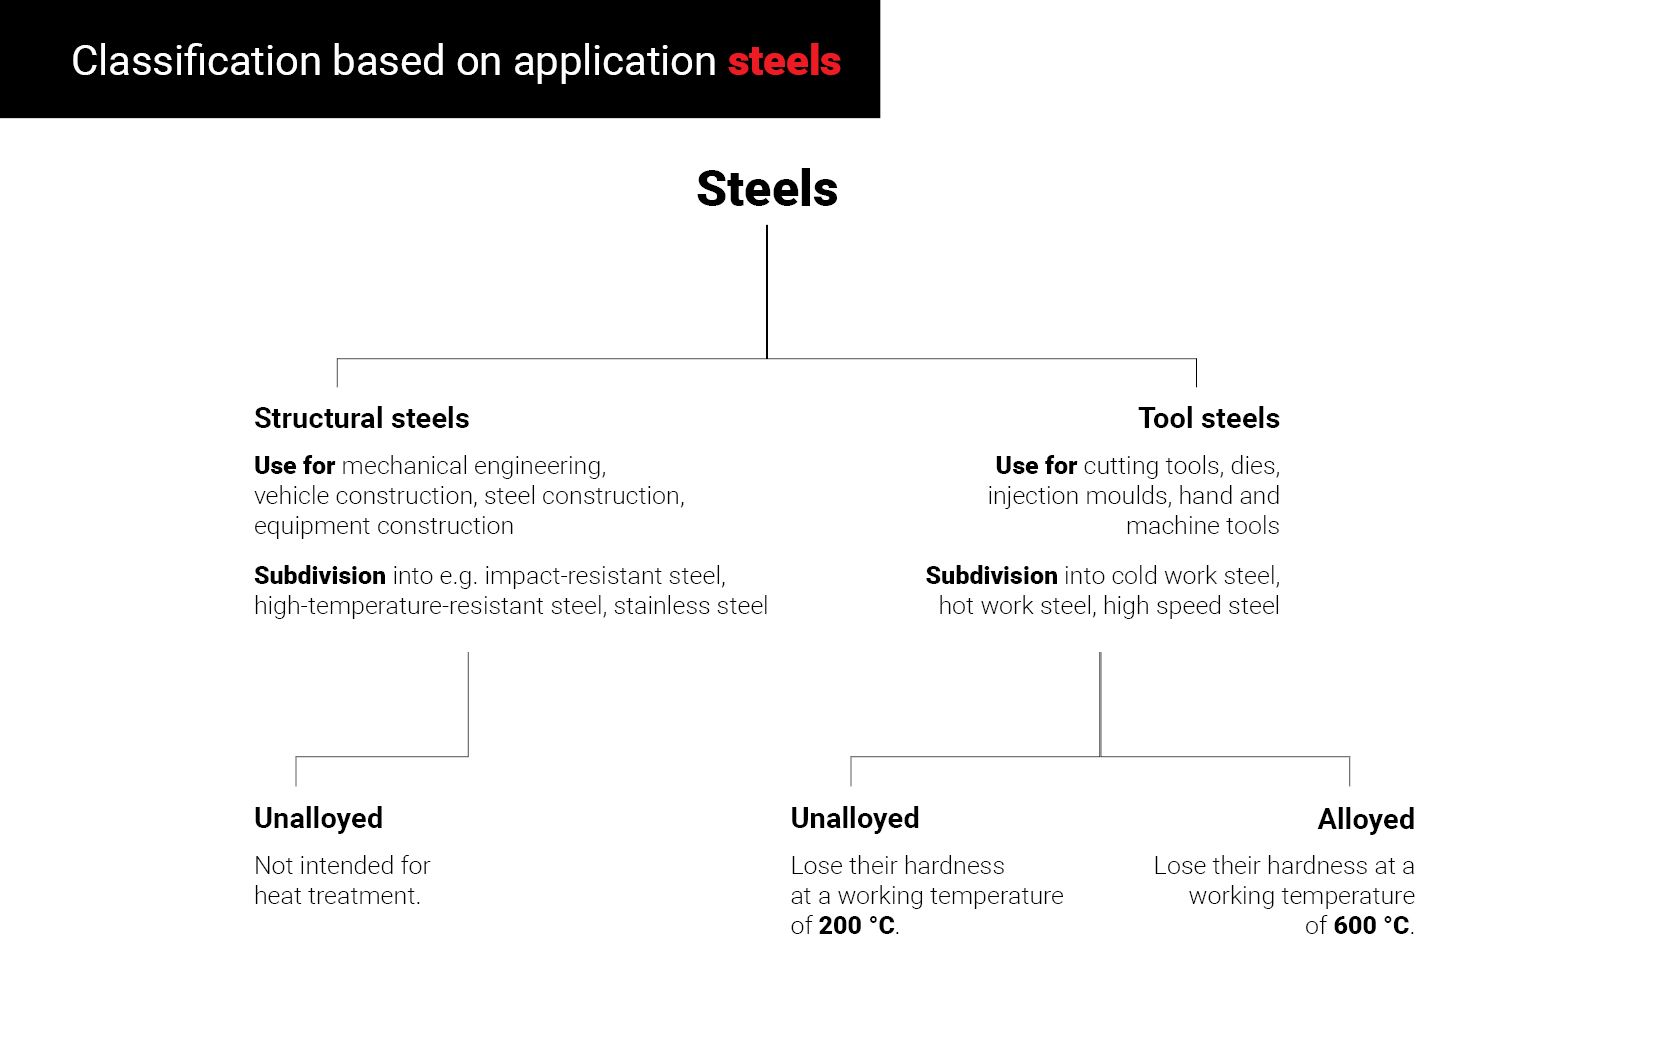 Classification based on application of steels